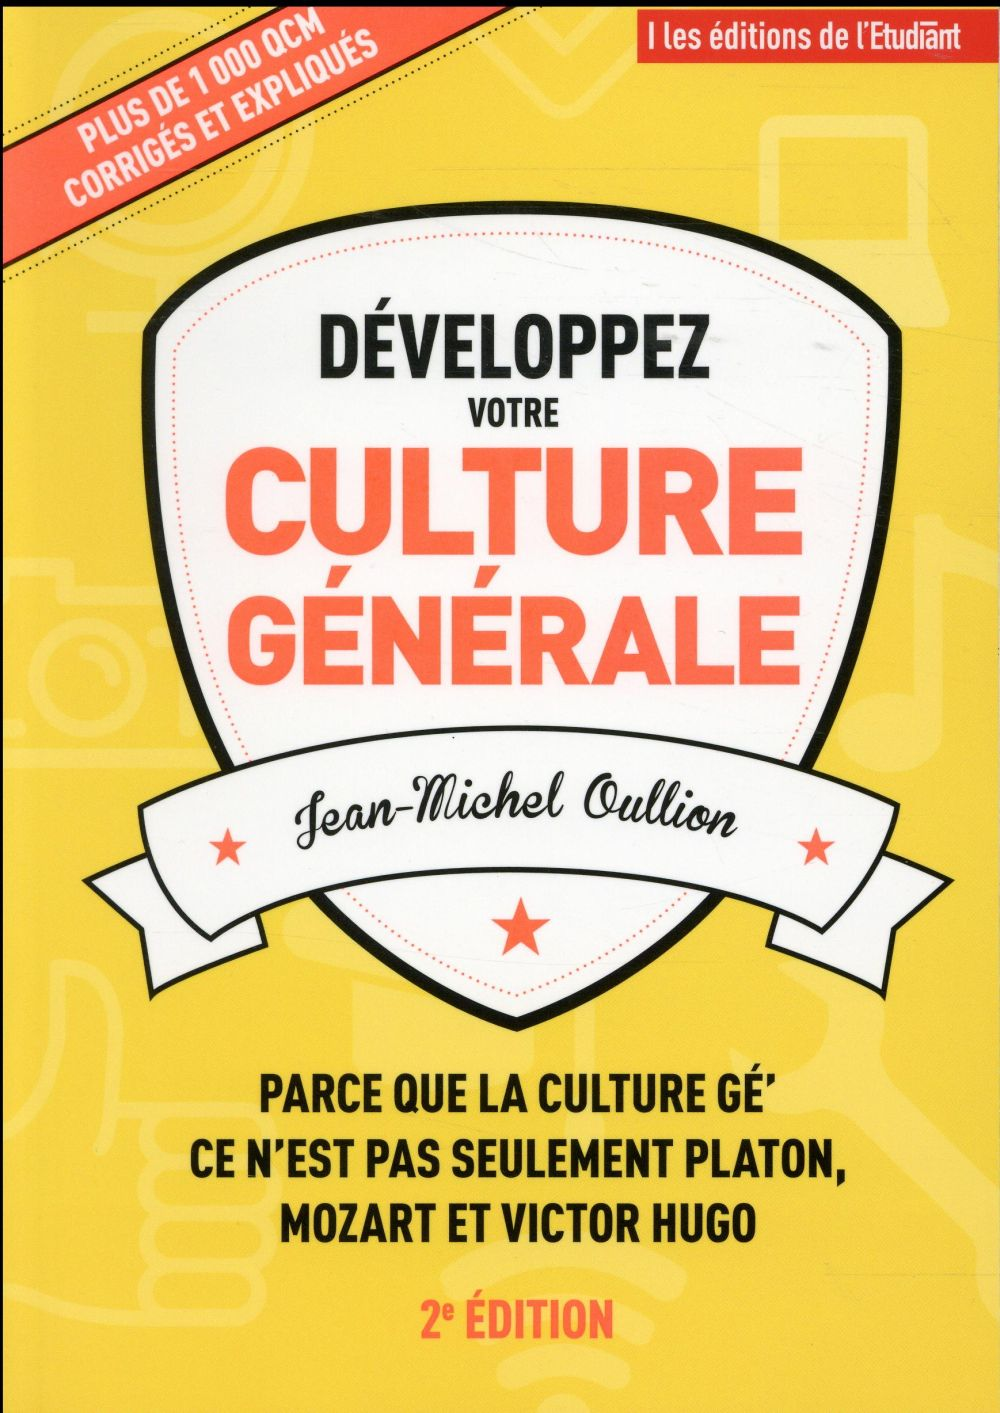 DEVELOPPEZ VOTRE CULTURE GENERALE Oullion Jean-Michel